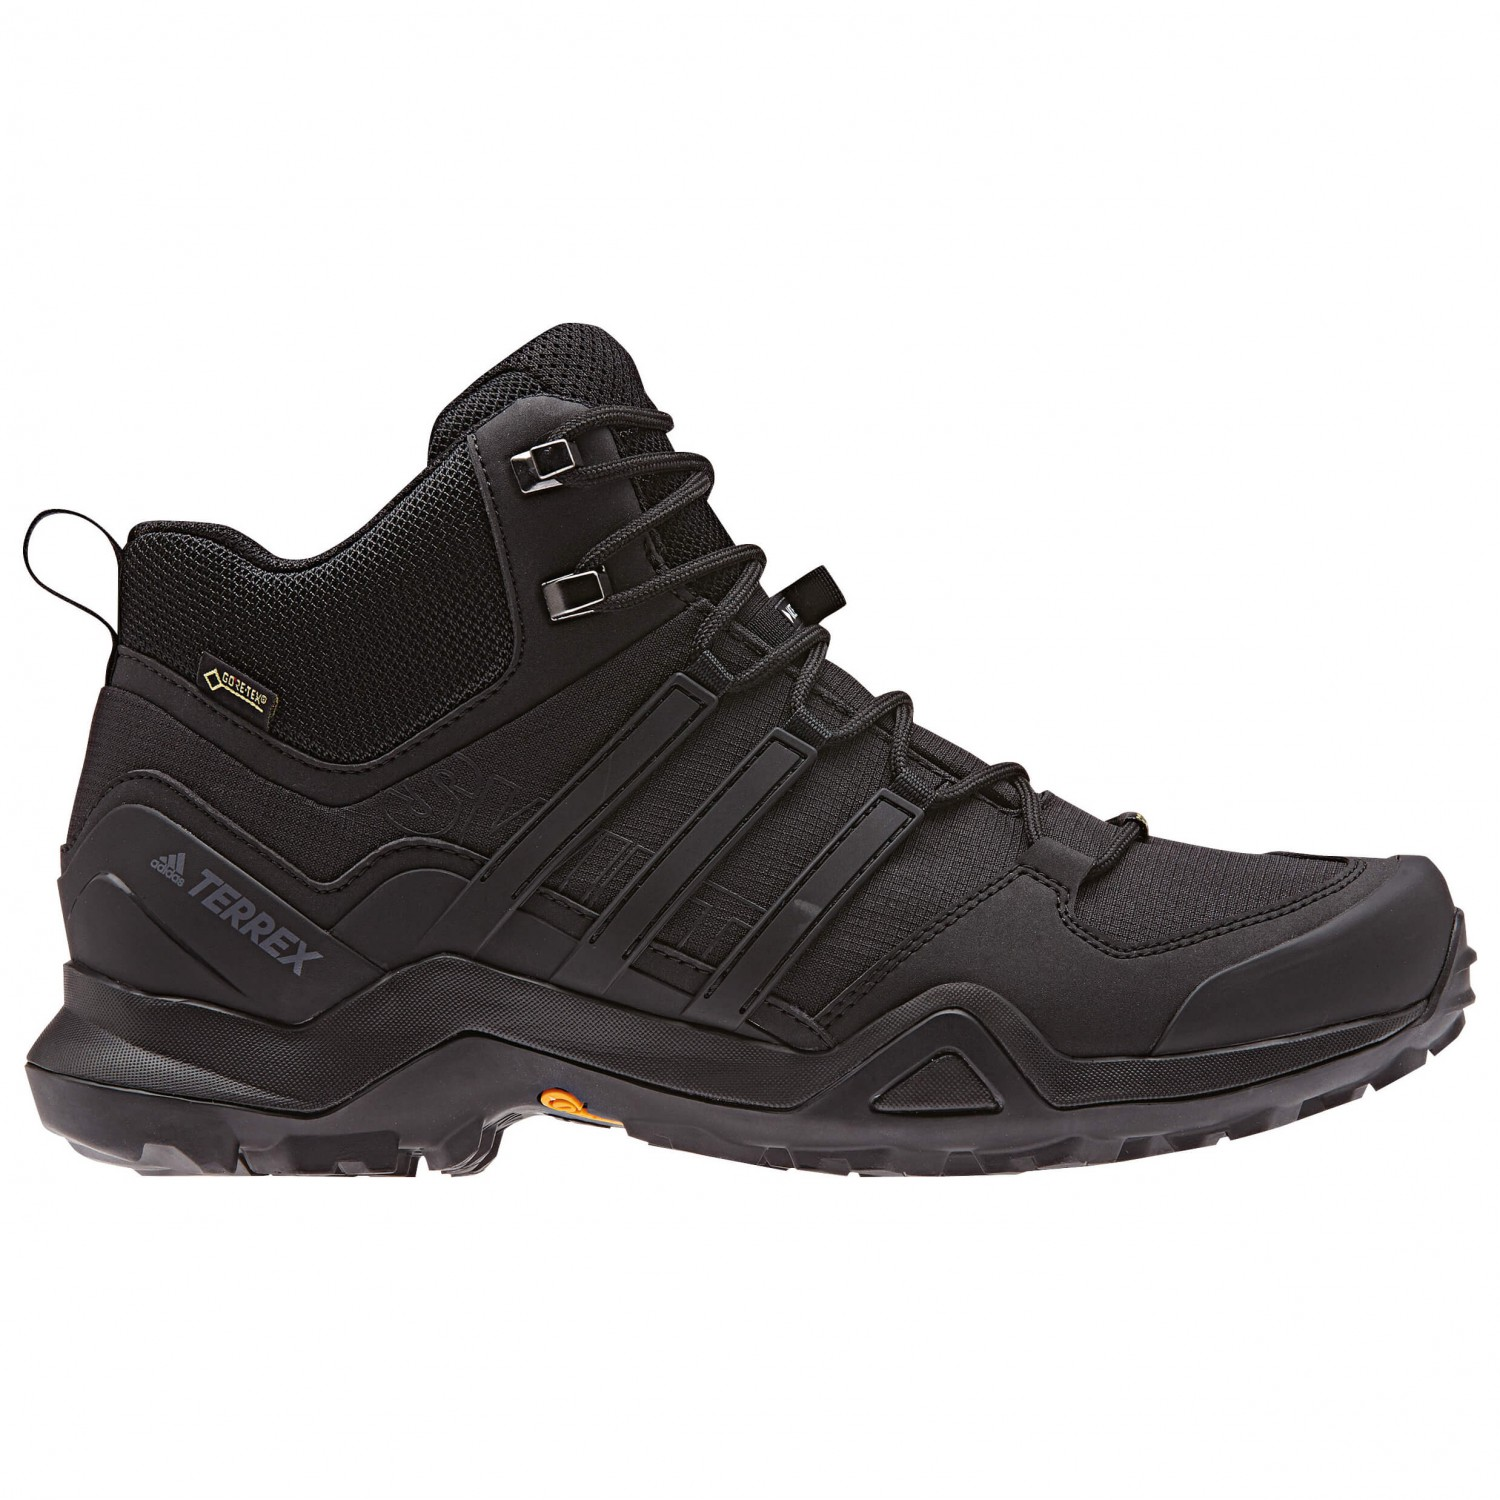 8b643a10cba4b Adidas Terrex Swift R2 Mid GTX - Walking Boots Men s